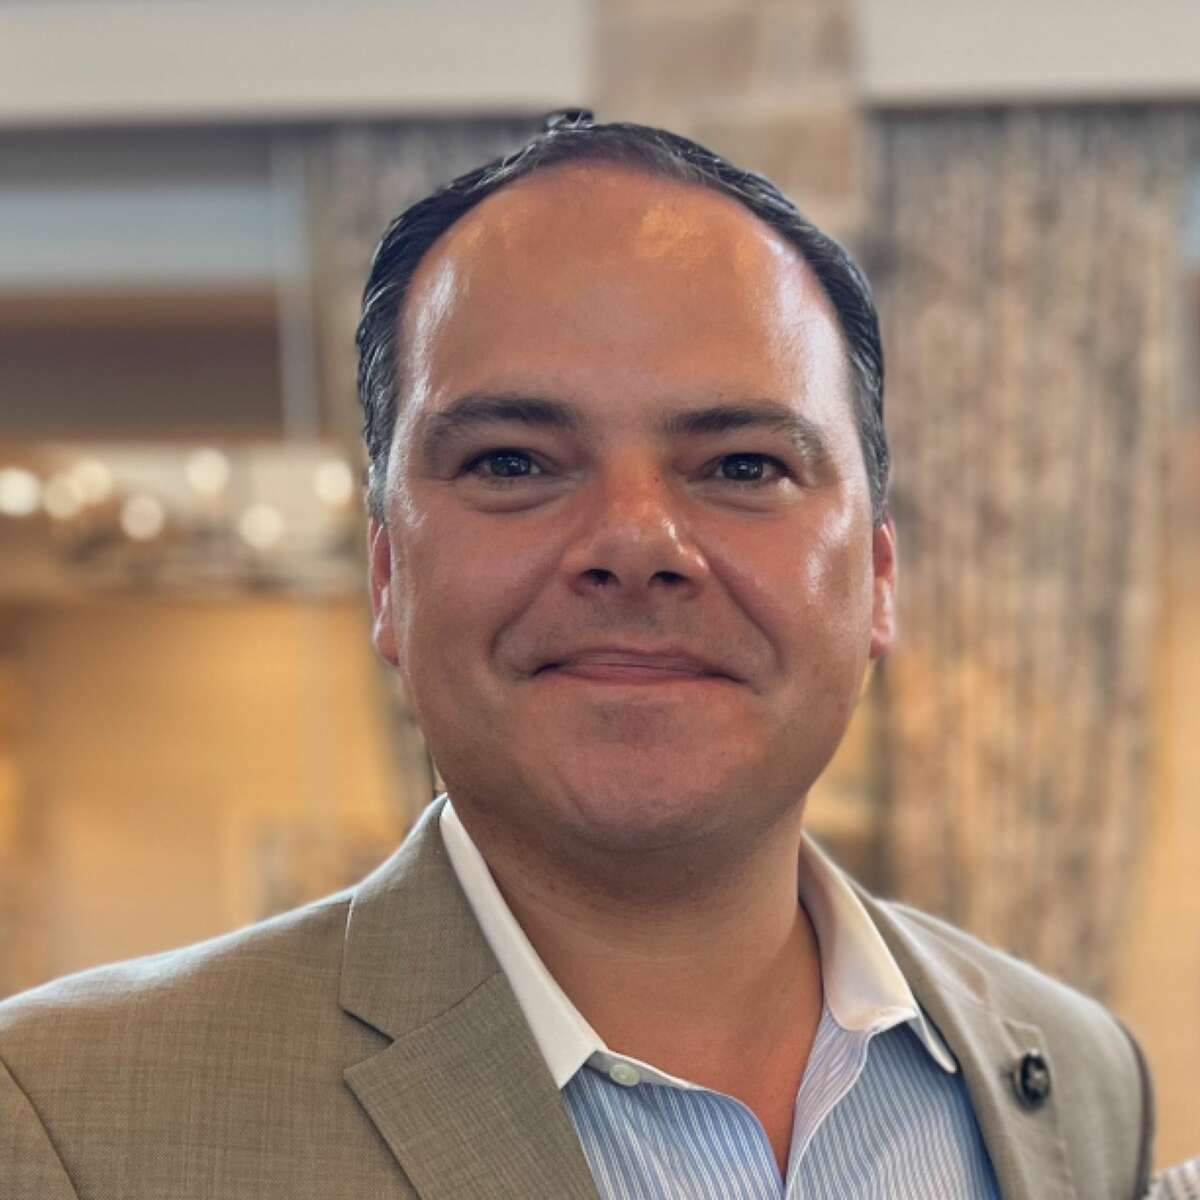 Dan Corrales has announced he will run for an at-large Midland City Council seat.